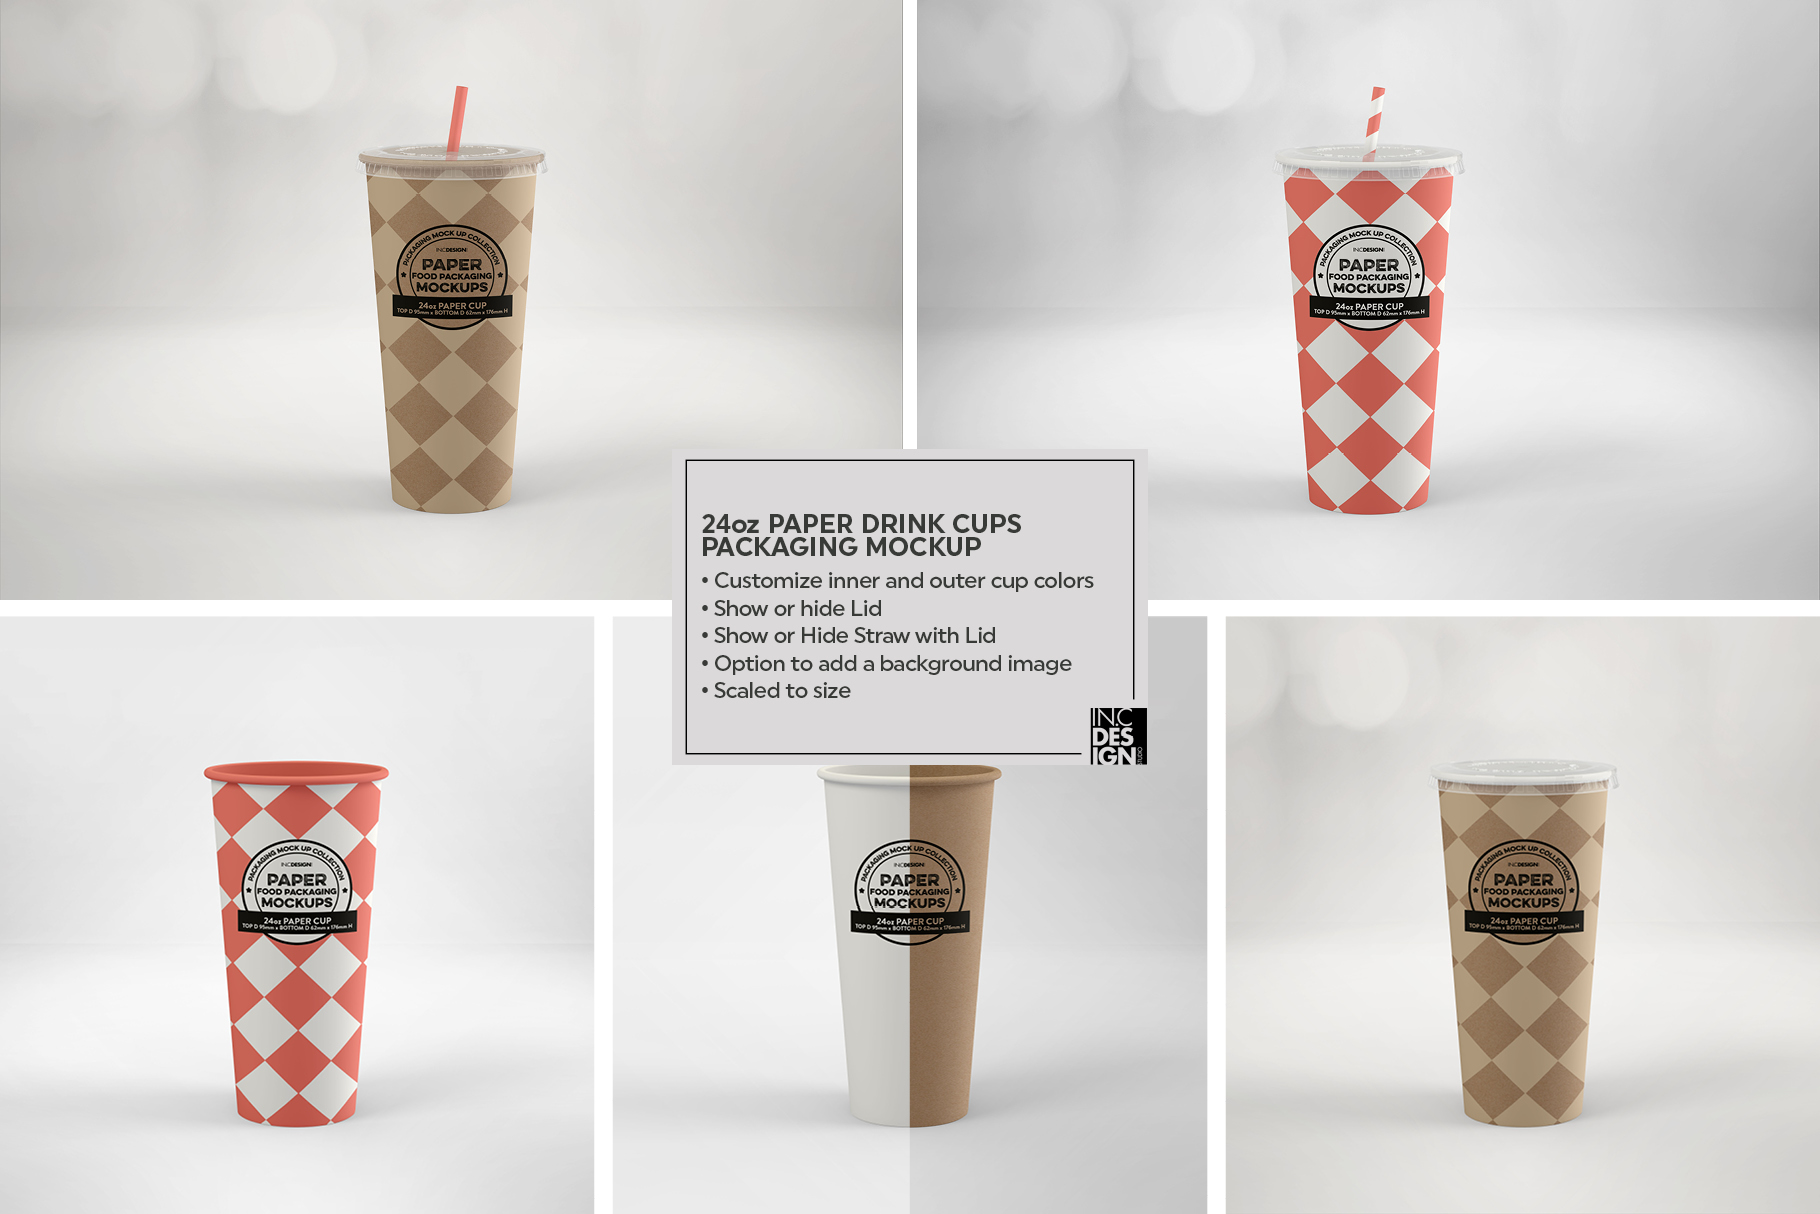 Paper Drink Cups Packaging Mockup example image 16